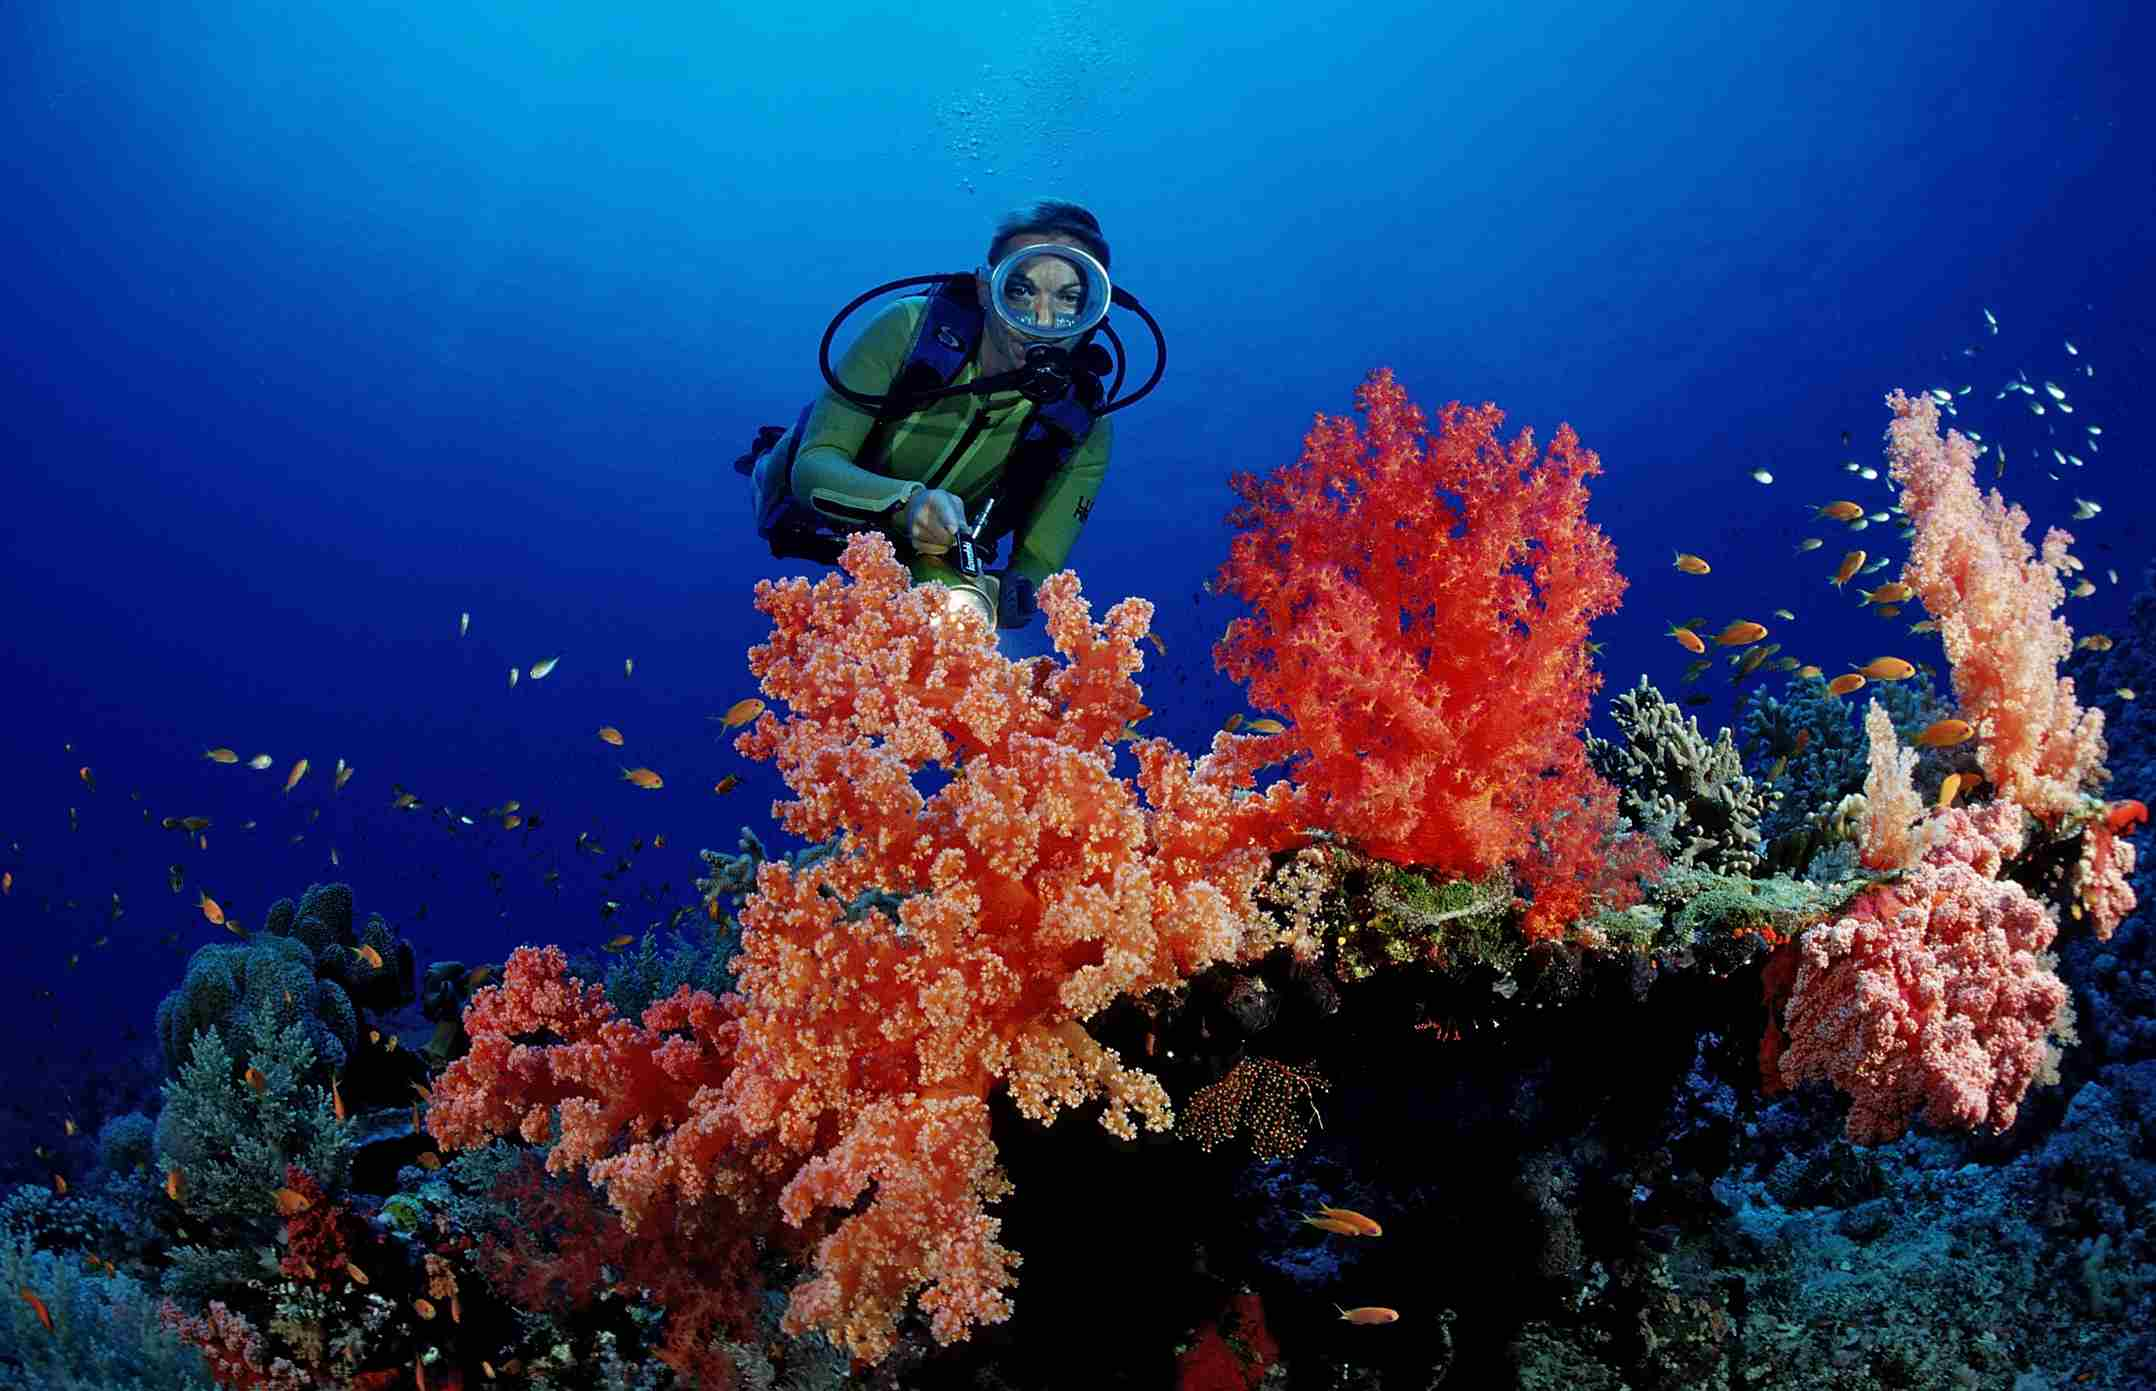 The Best Places in the World to Go Scuba Diving